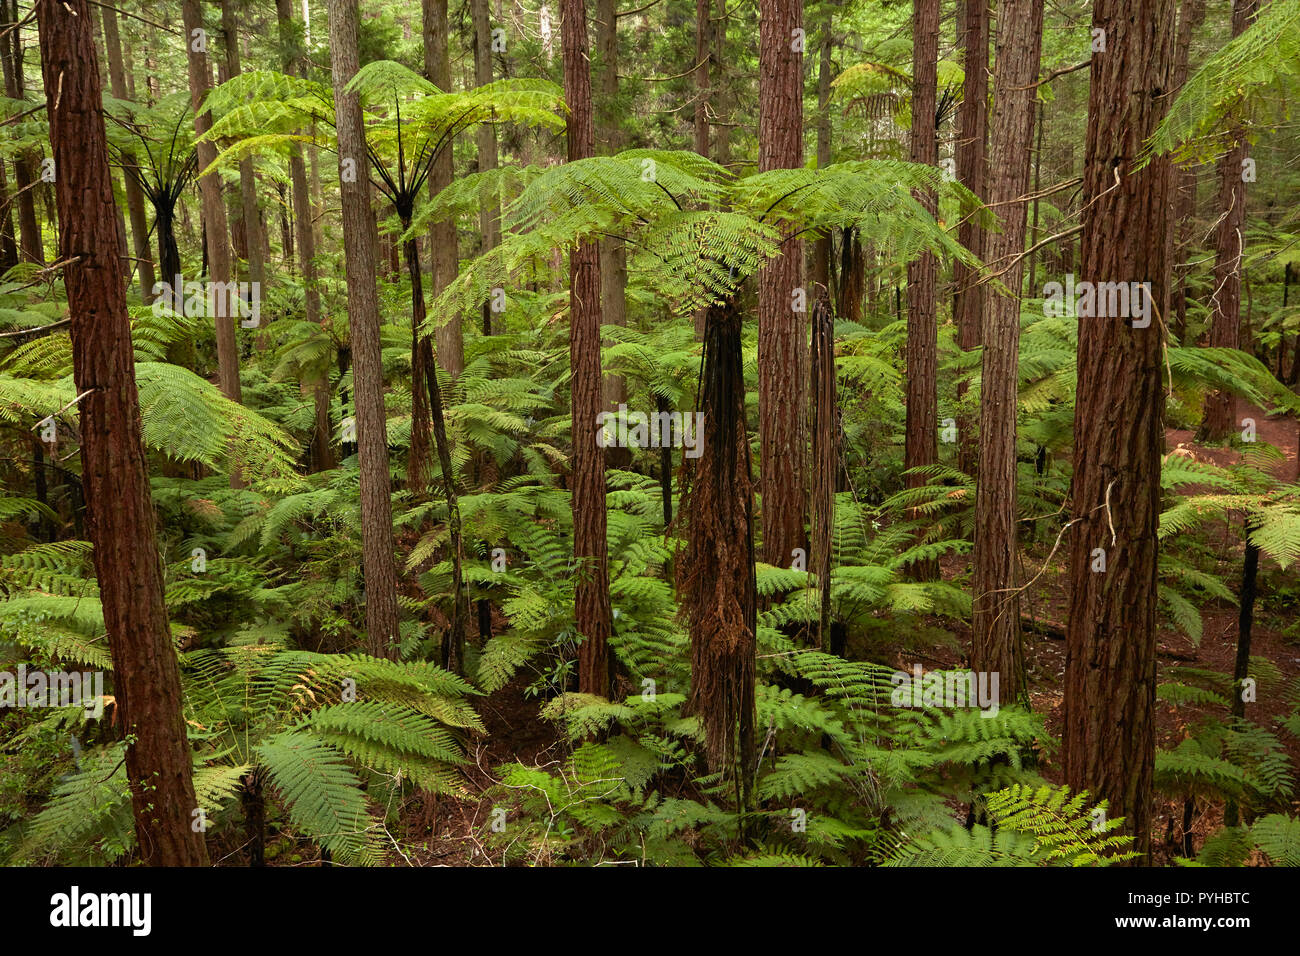 View over redwoods and ferns from Redwoods Treewalk at The Redwoods (Whakarewarewa Forest), Rotorua, North Island, New Zealand - Stock Image